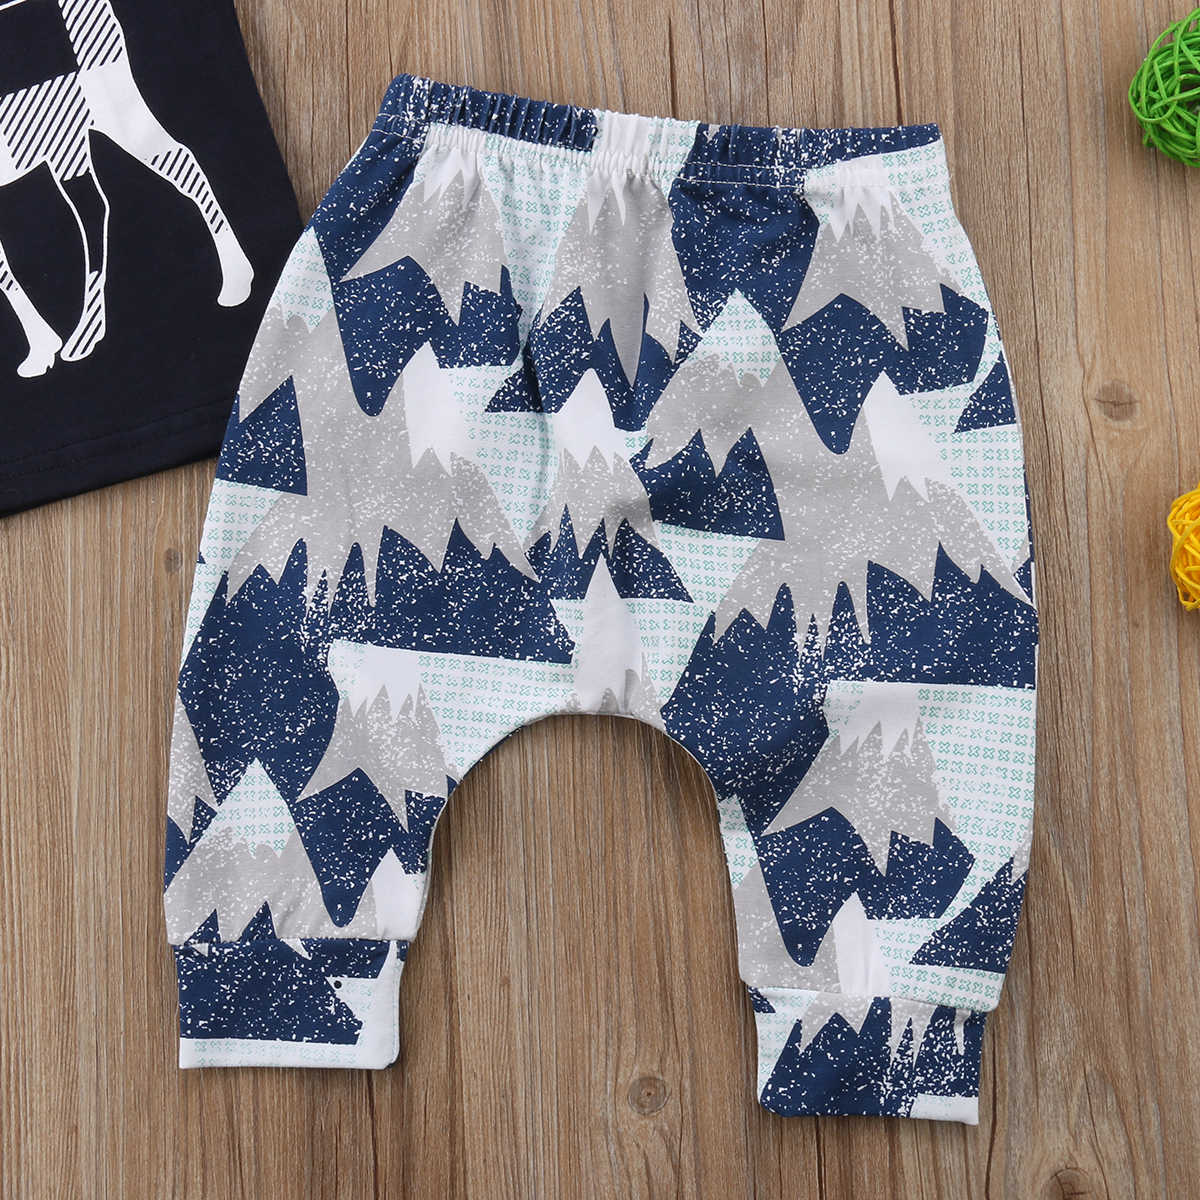 291e2754bf44 Detail Feedback Questions about 2018 New Newborn Toddler Infant Baby ...